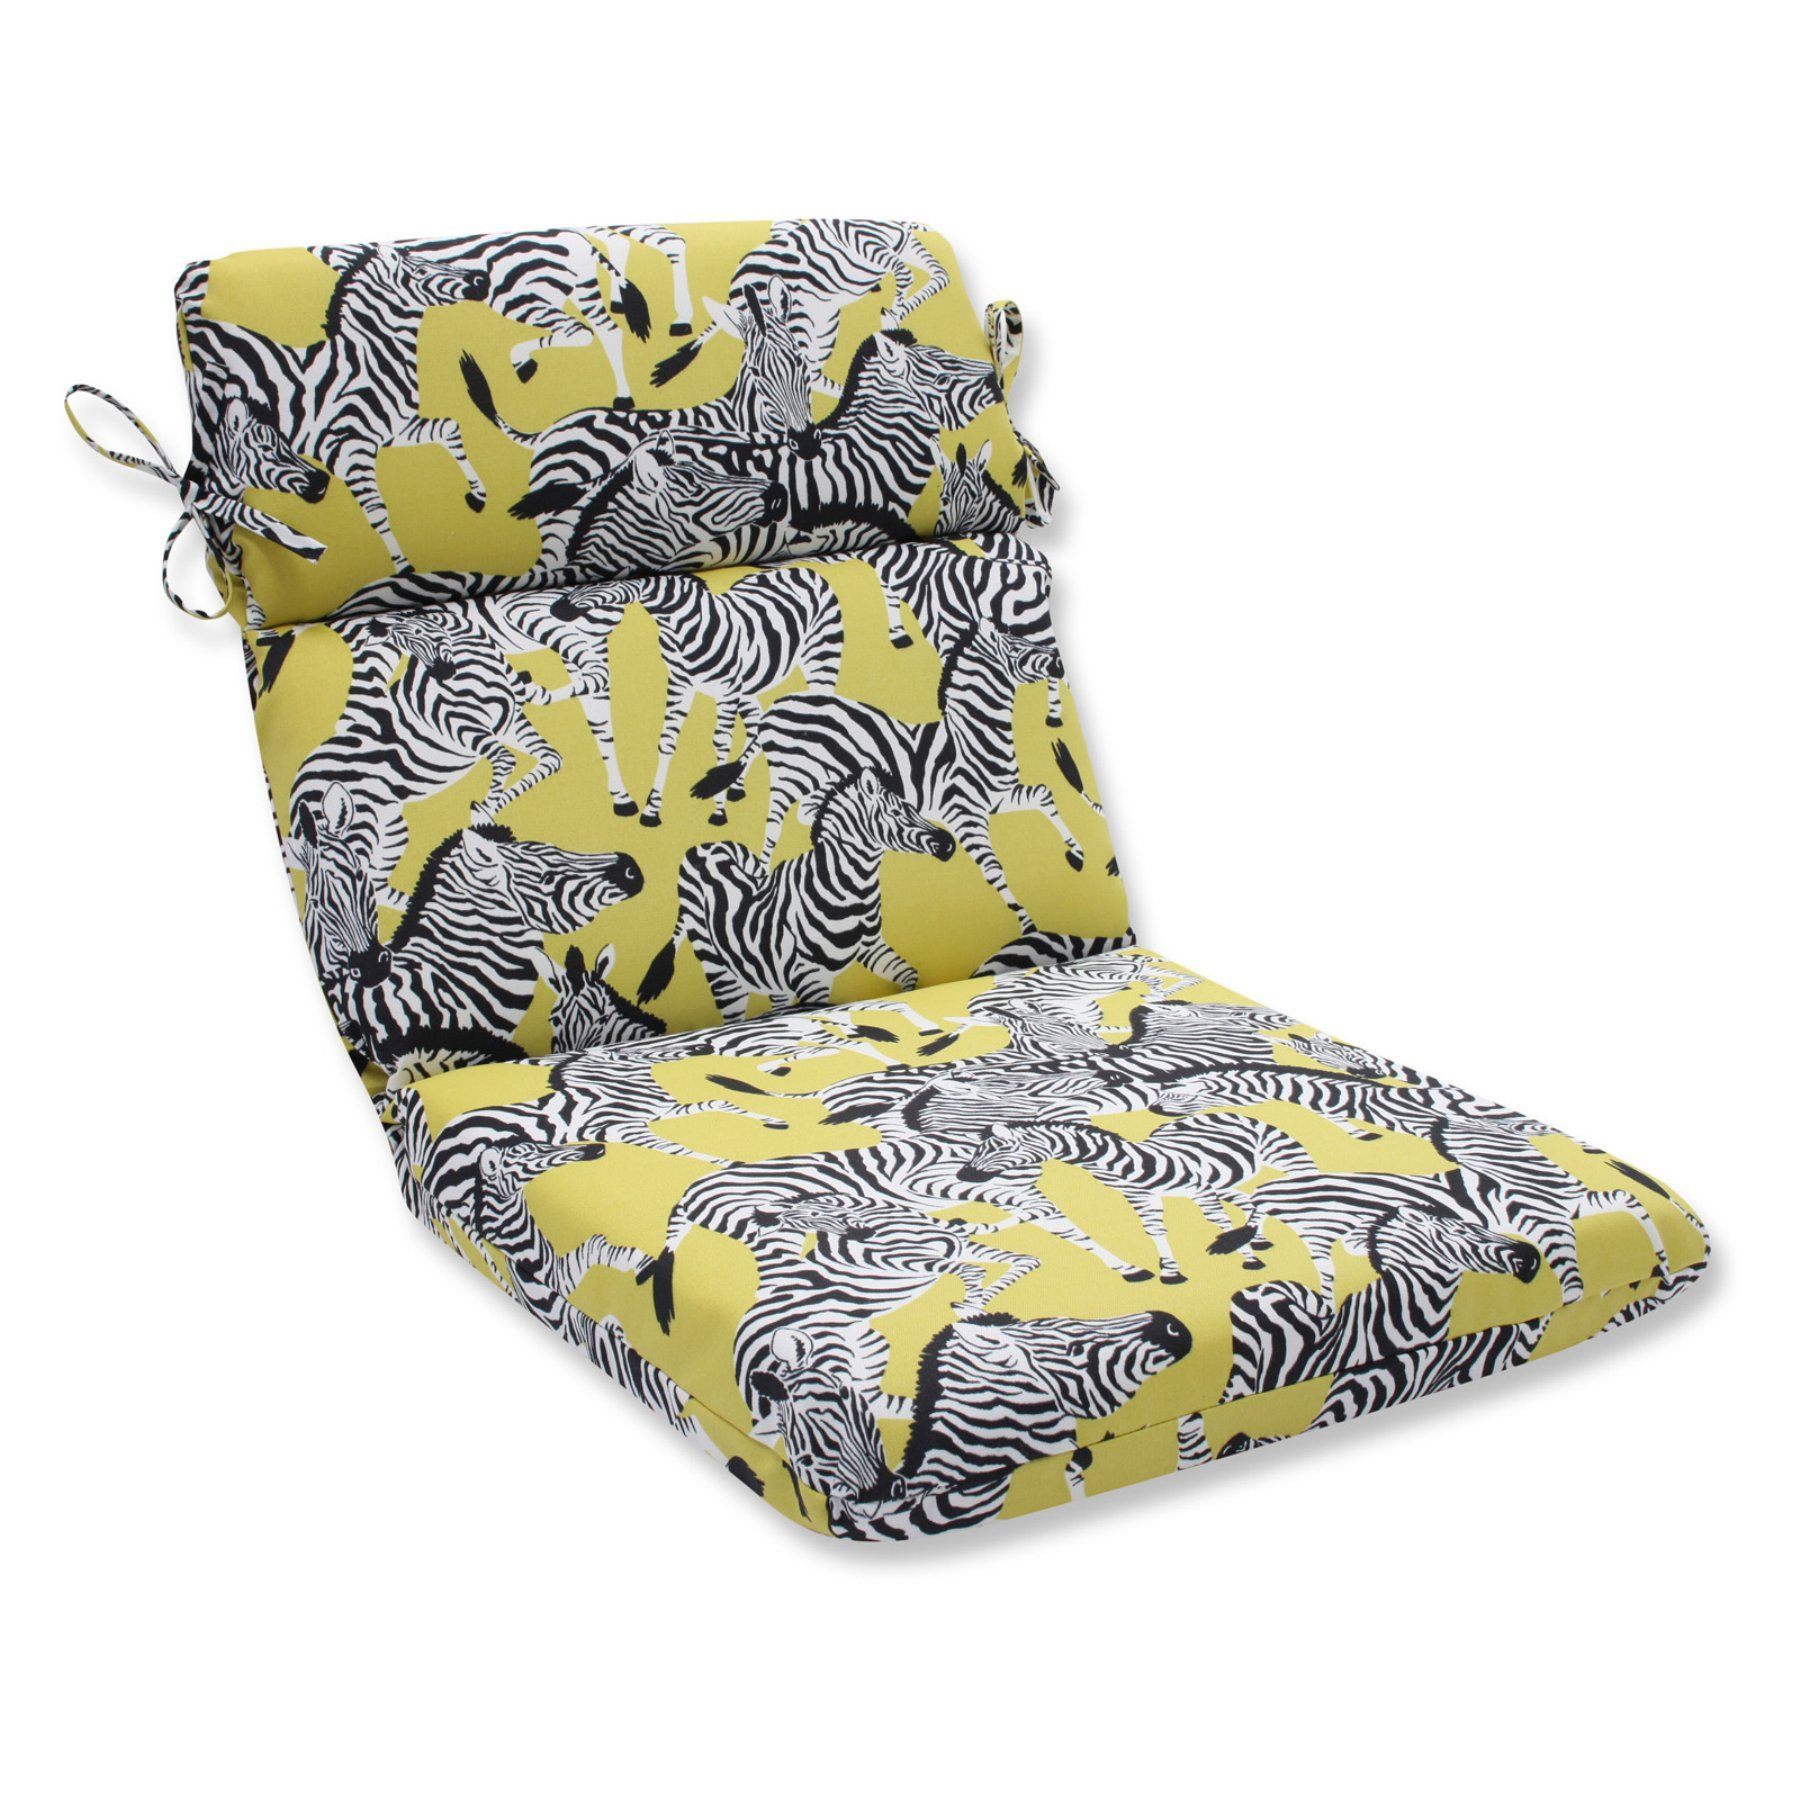 Tremendous Pillow Perfect Herd Together Wasabi Rounded Corners Chair Machost Co Dining Chair Design Ideas Machostcouk